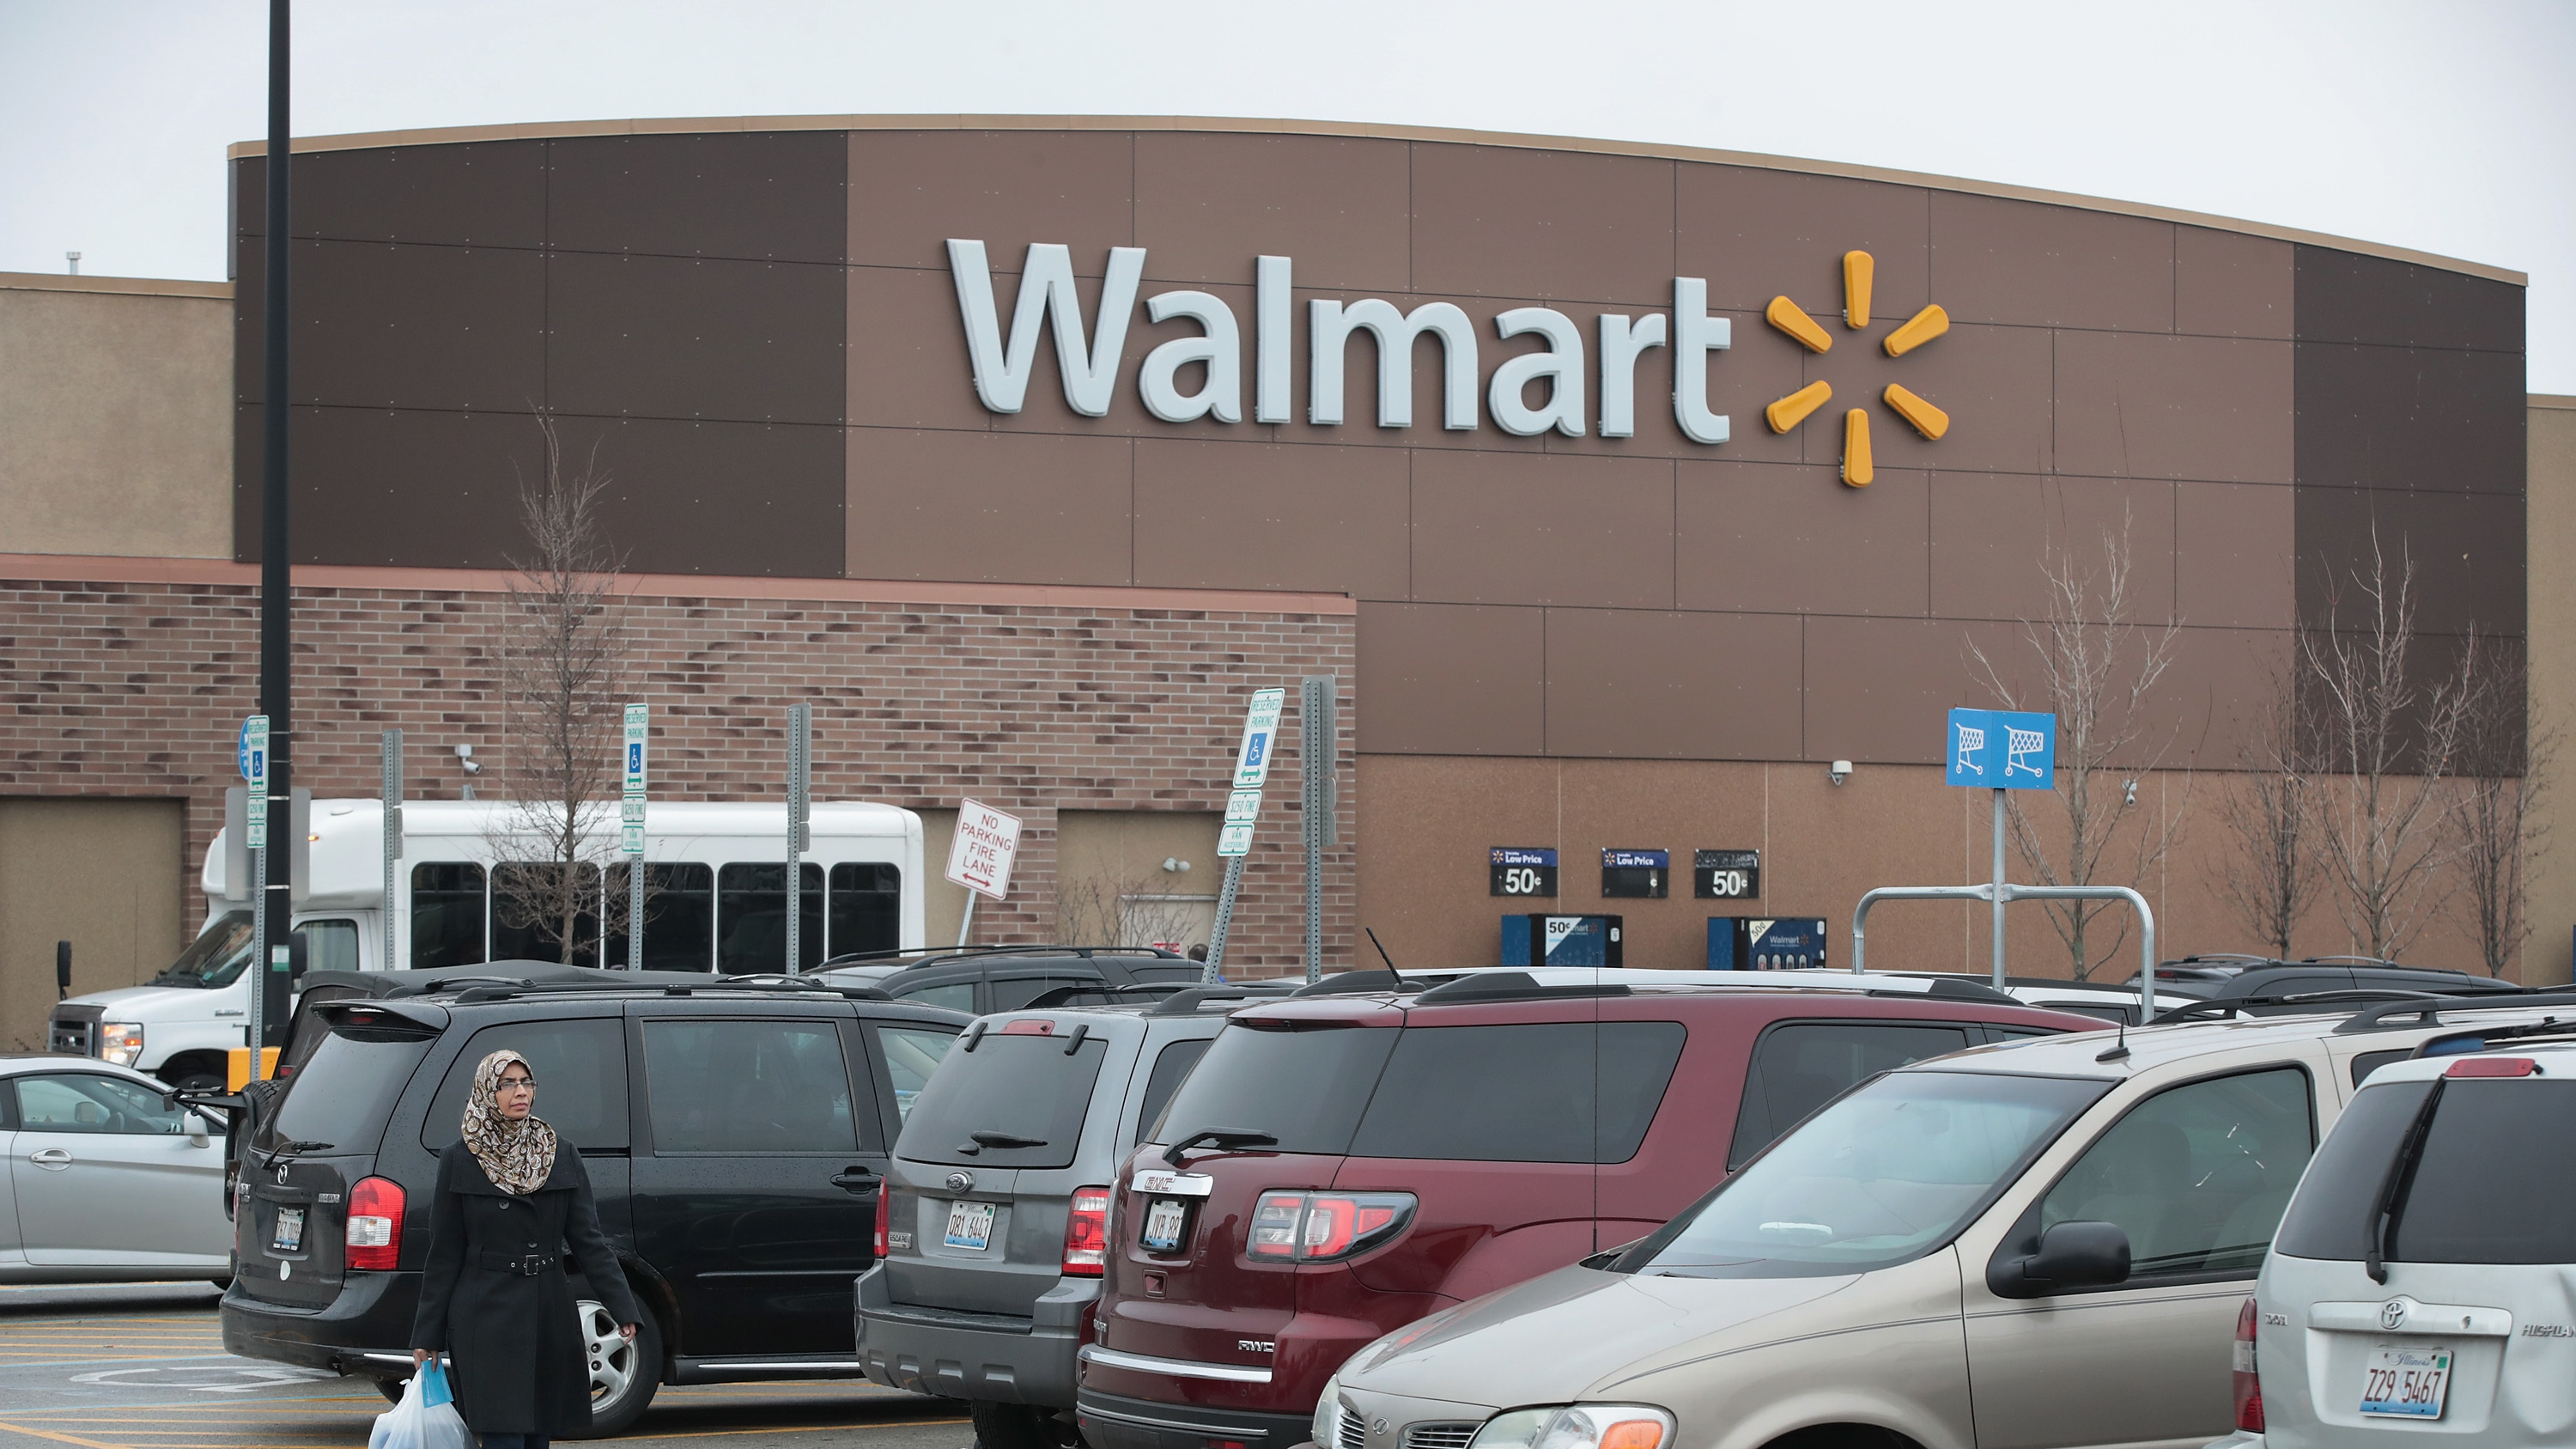 Walmart to Up Wages, Award One-Time Bonus